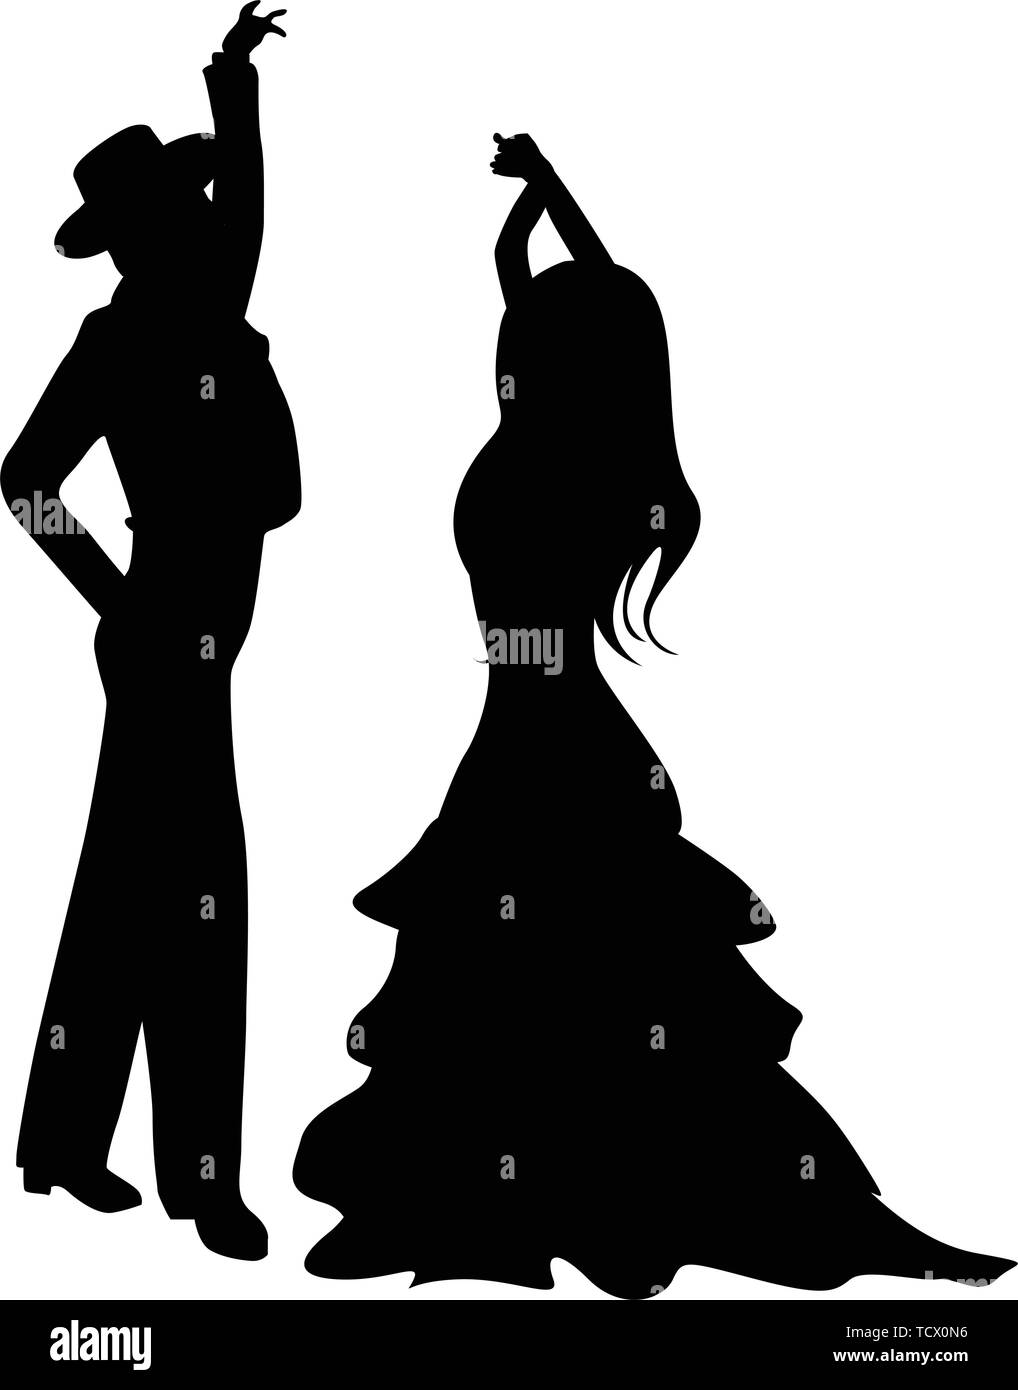 Flamenco dancers silhouettes, isolated and grouped objects over white background - Stock Image